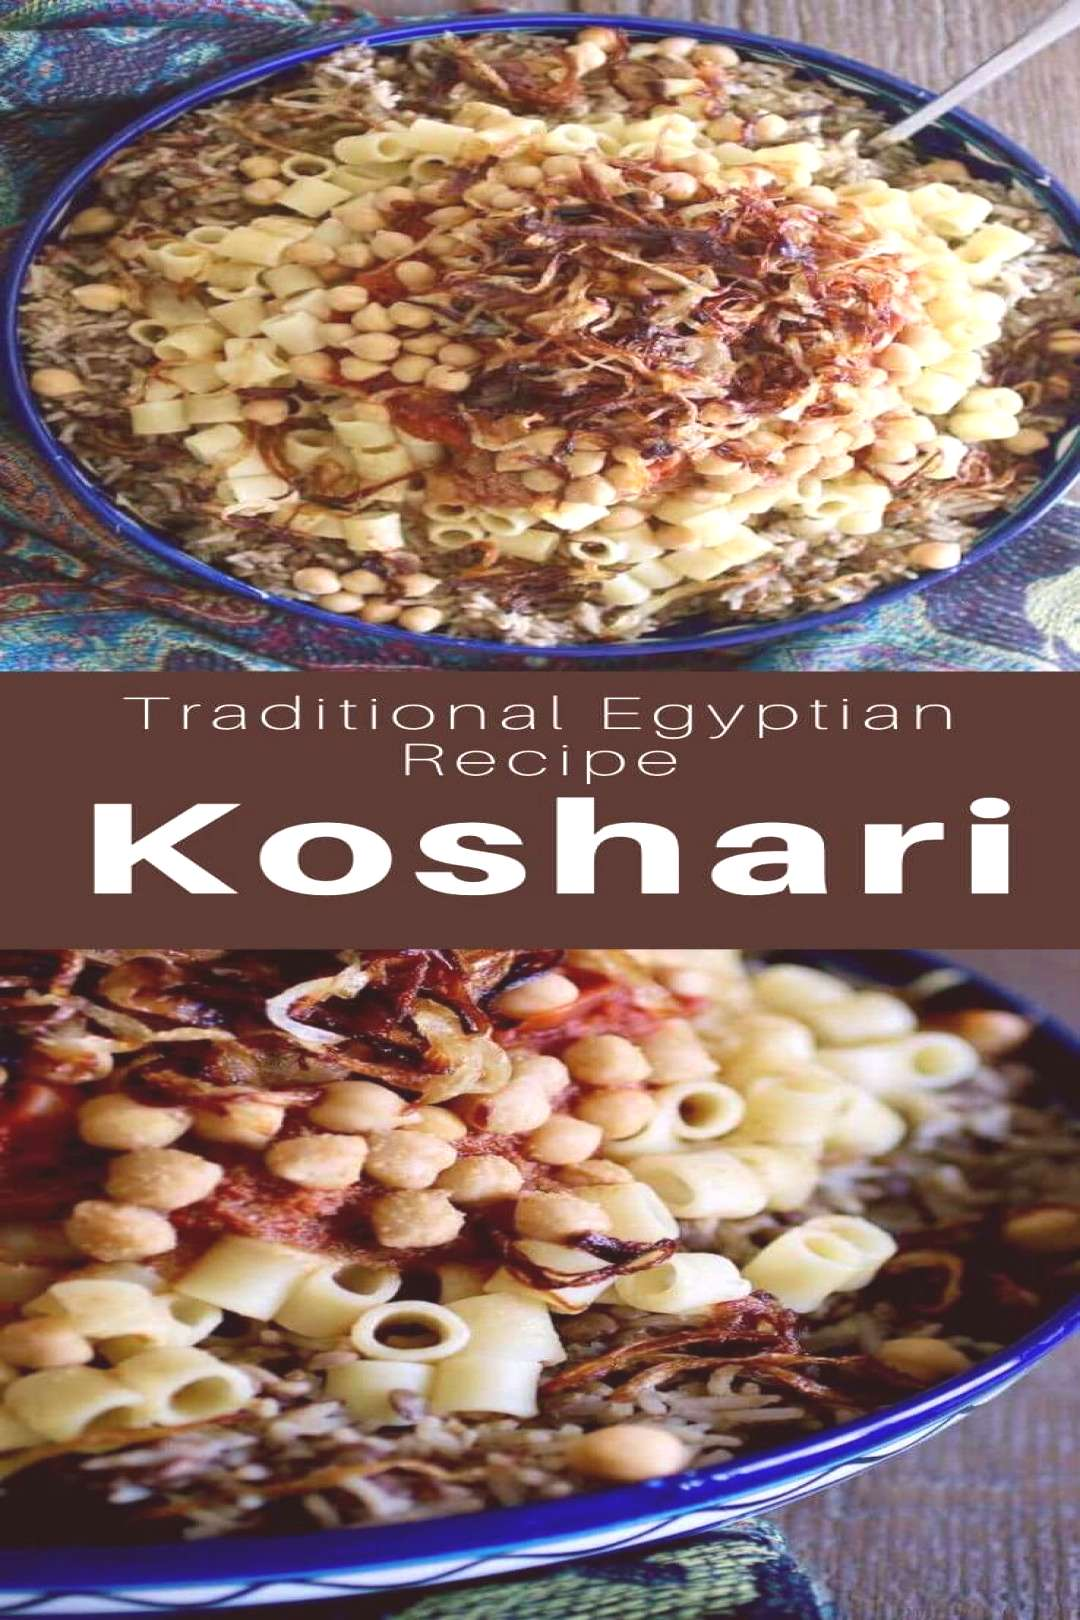 Koshari is a very popular dish in Egypt, made with rice, lentils, chickpeas and macaroni, topped wi